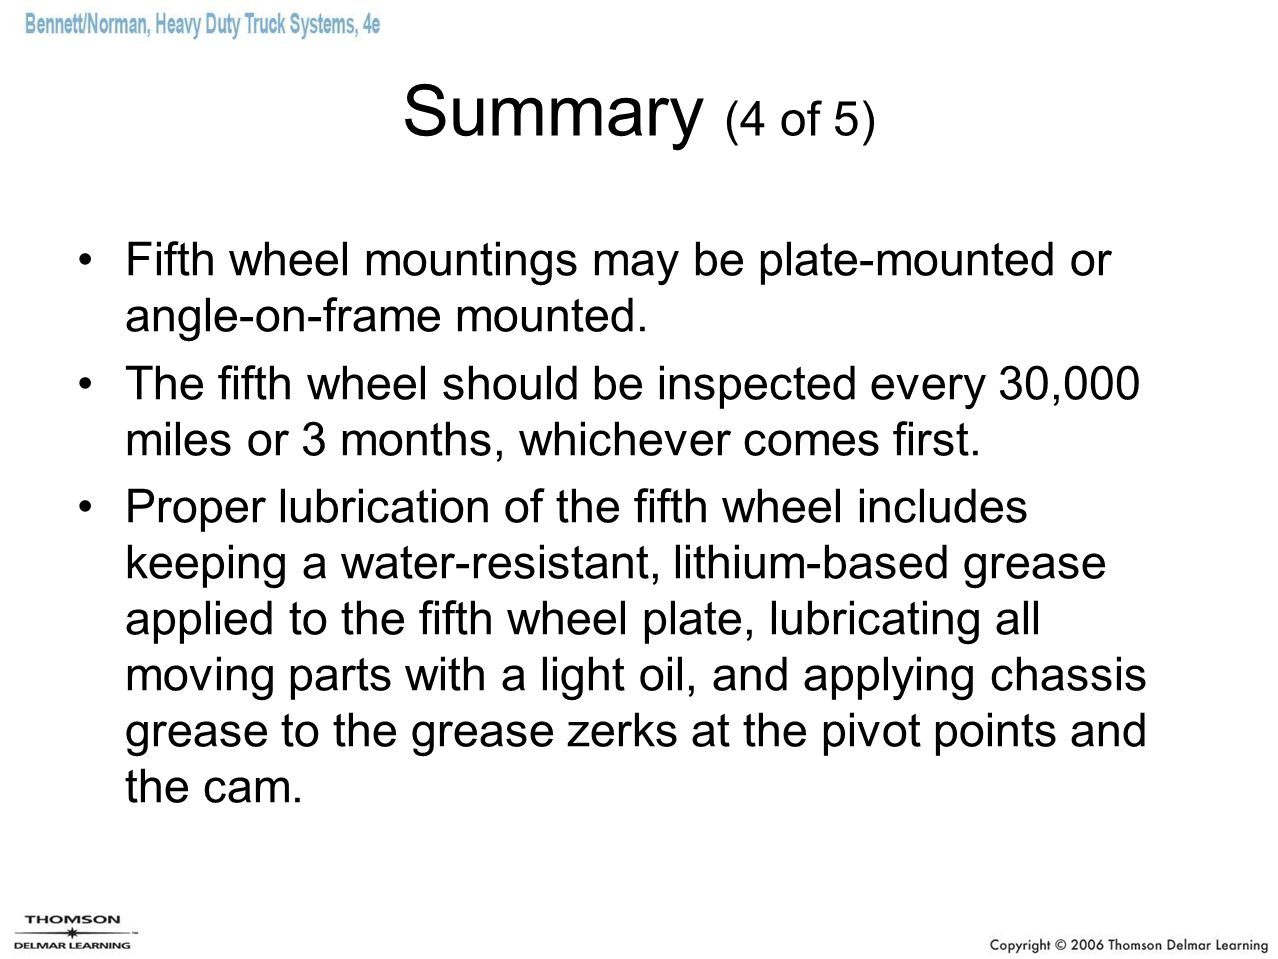 Summary (4 of 5) Fifth wheel mountings may be plate-mounted or angle-on-frame mounted. The fifth wheel should be inspected every 30,000 miles or 3 mon